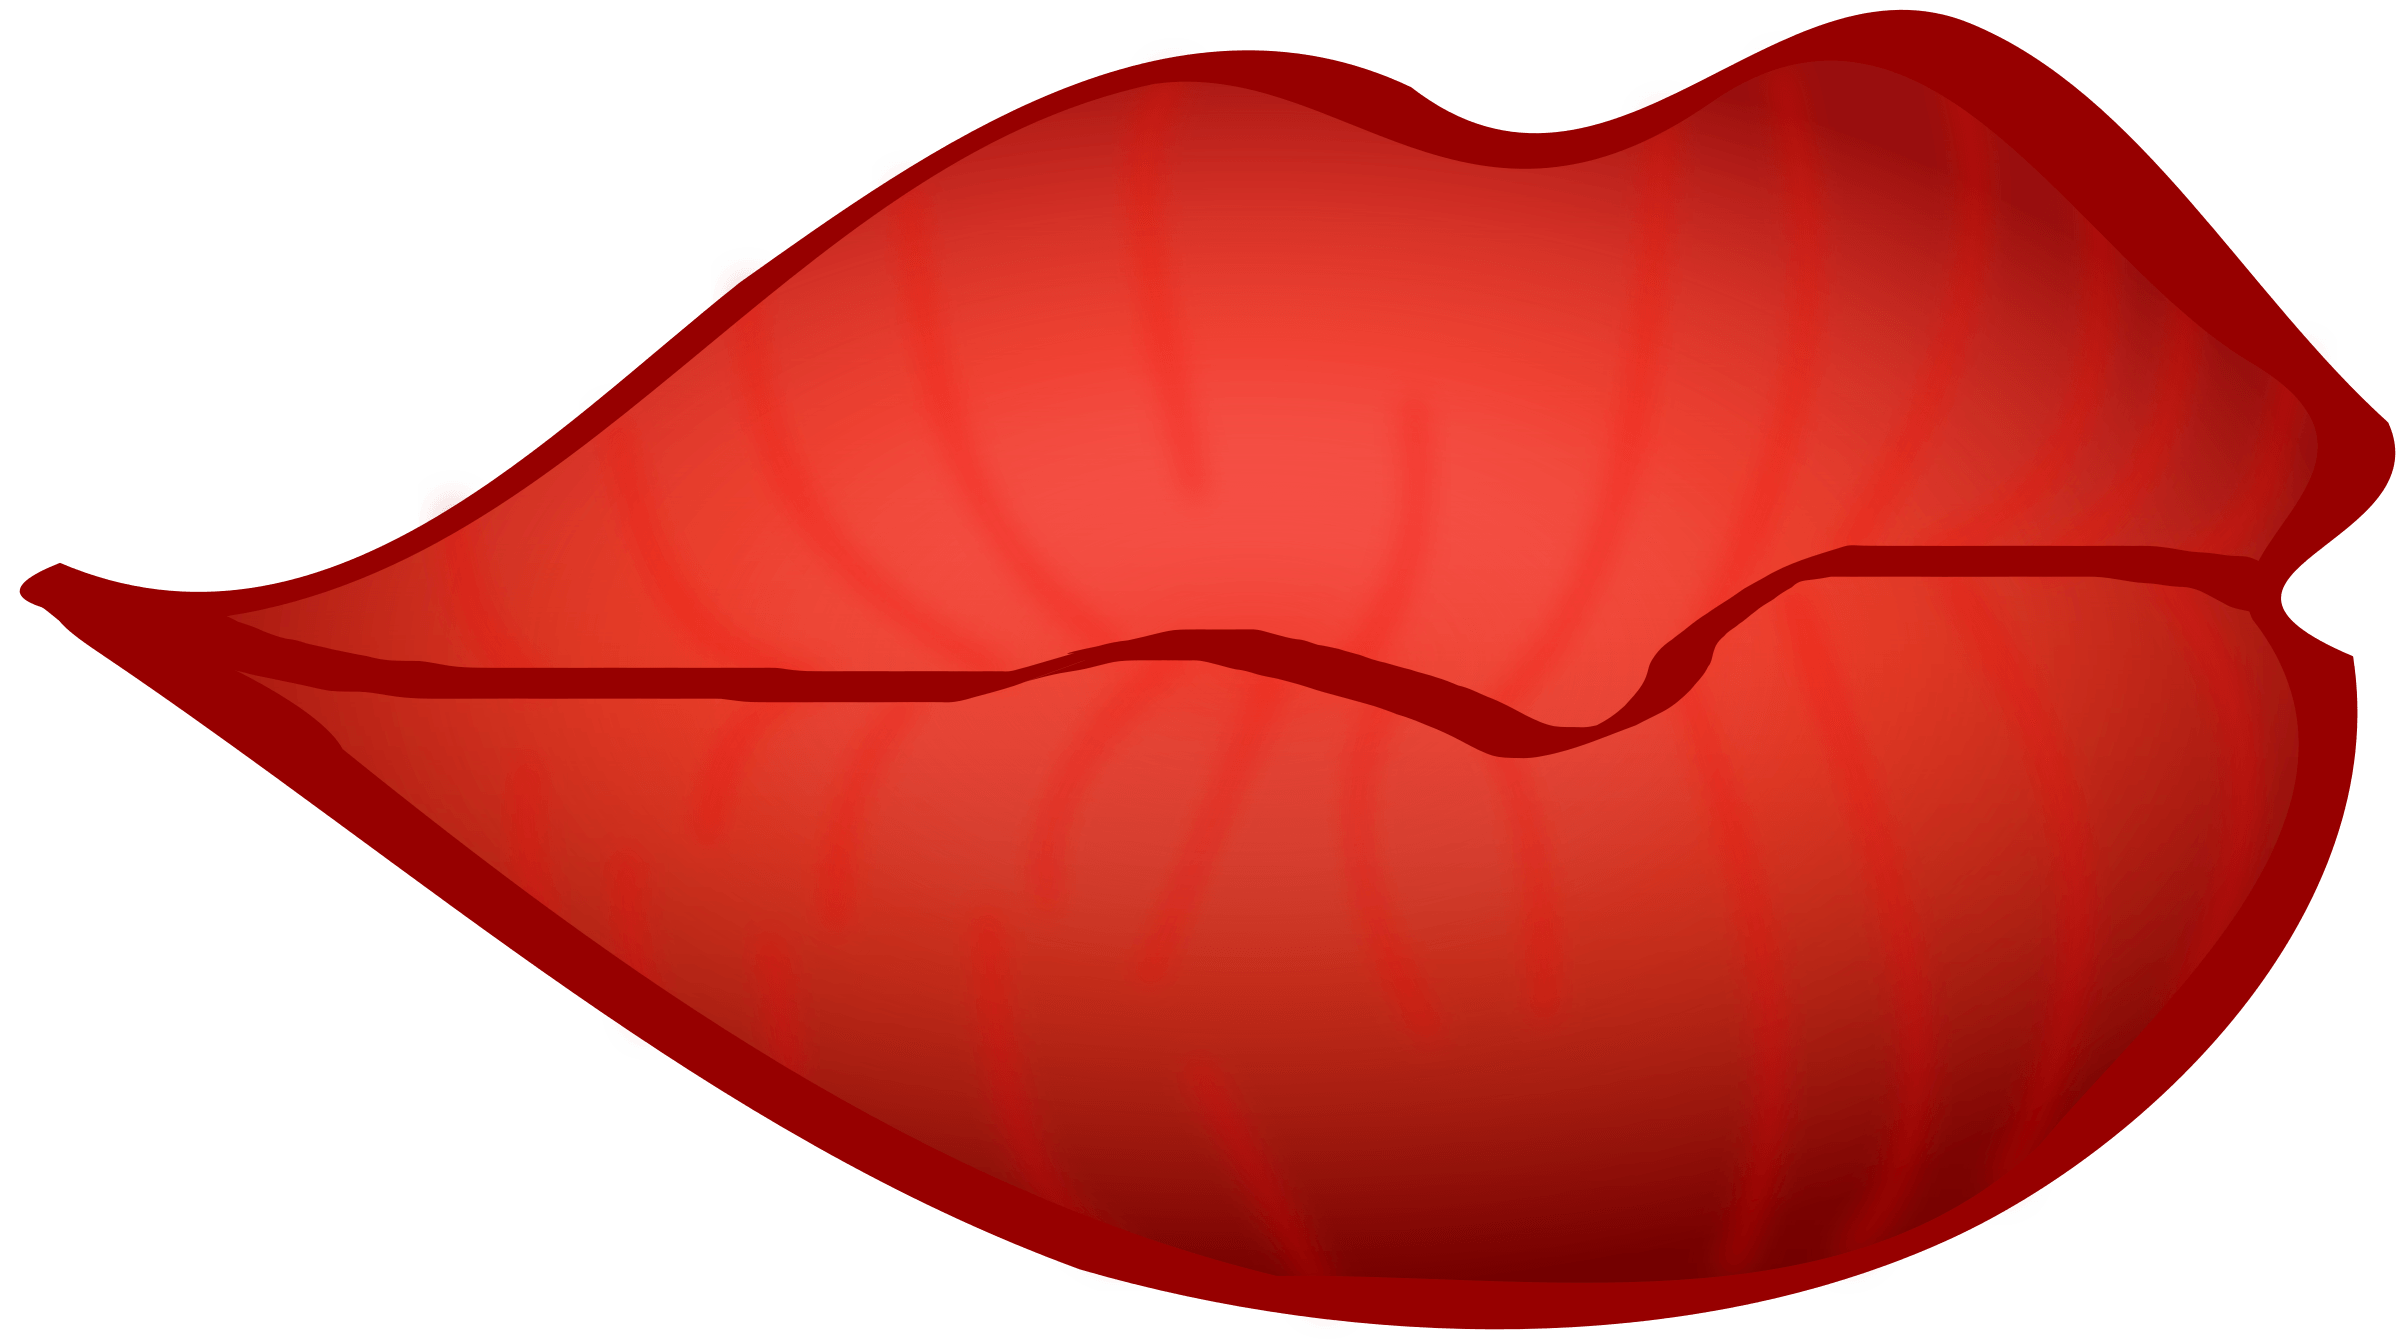 Kiss clipart puckered lip. Red lipstick cliparts zone